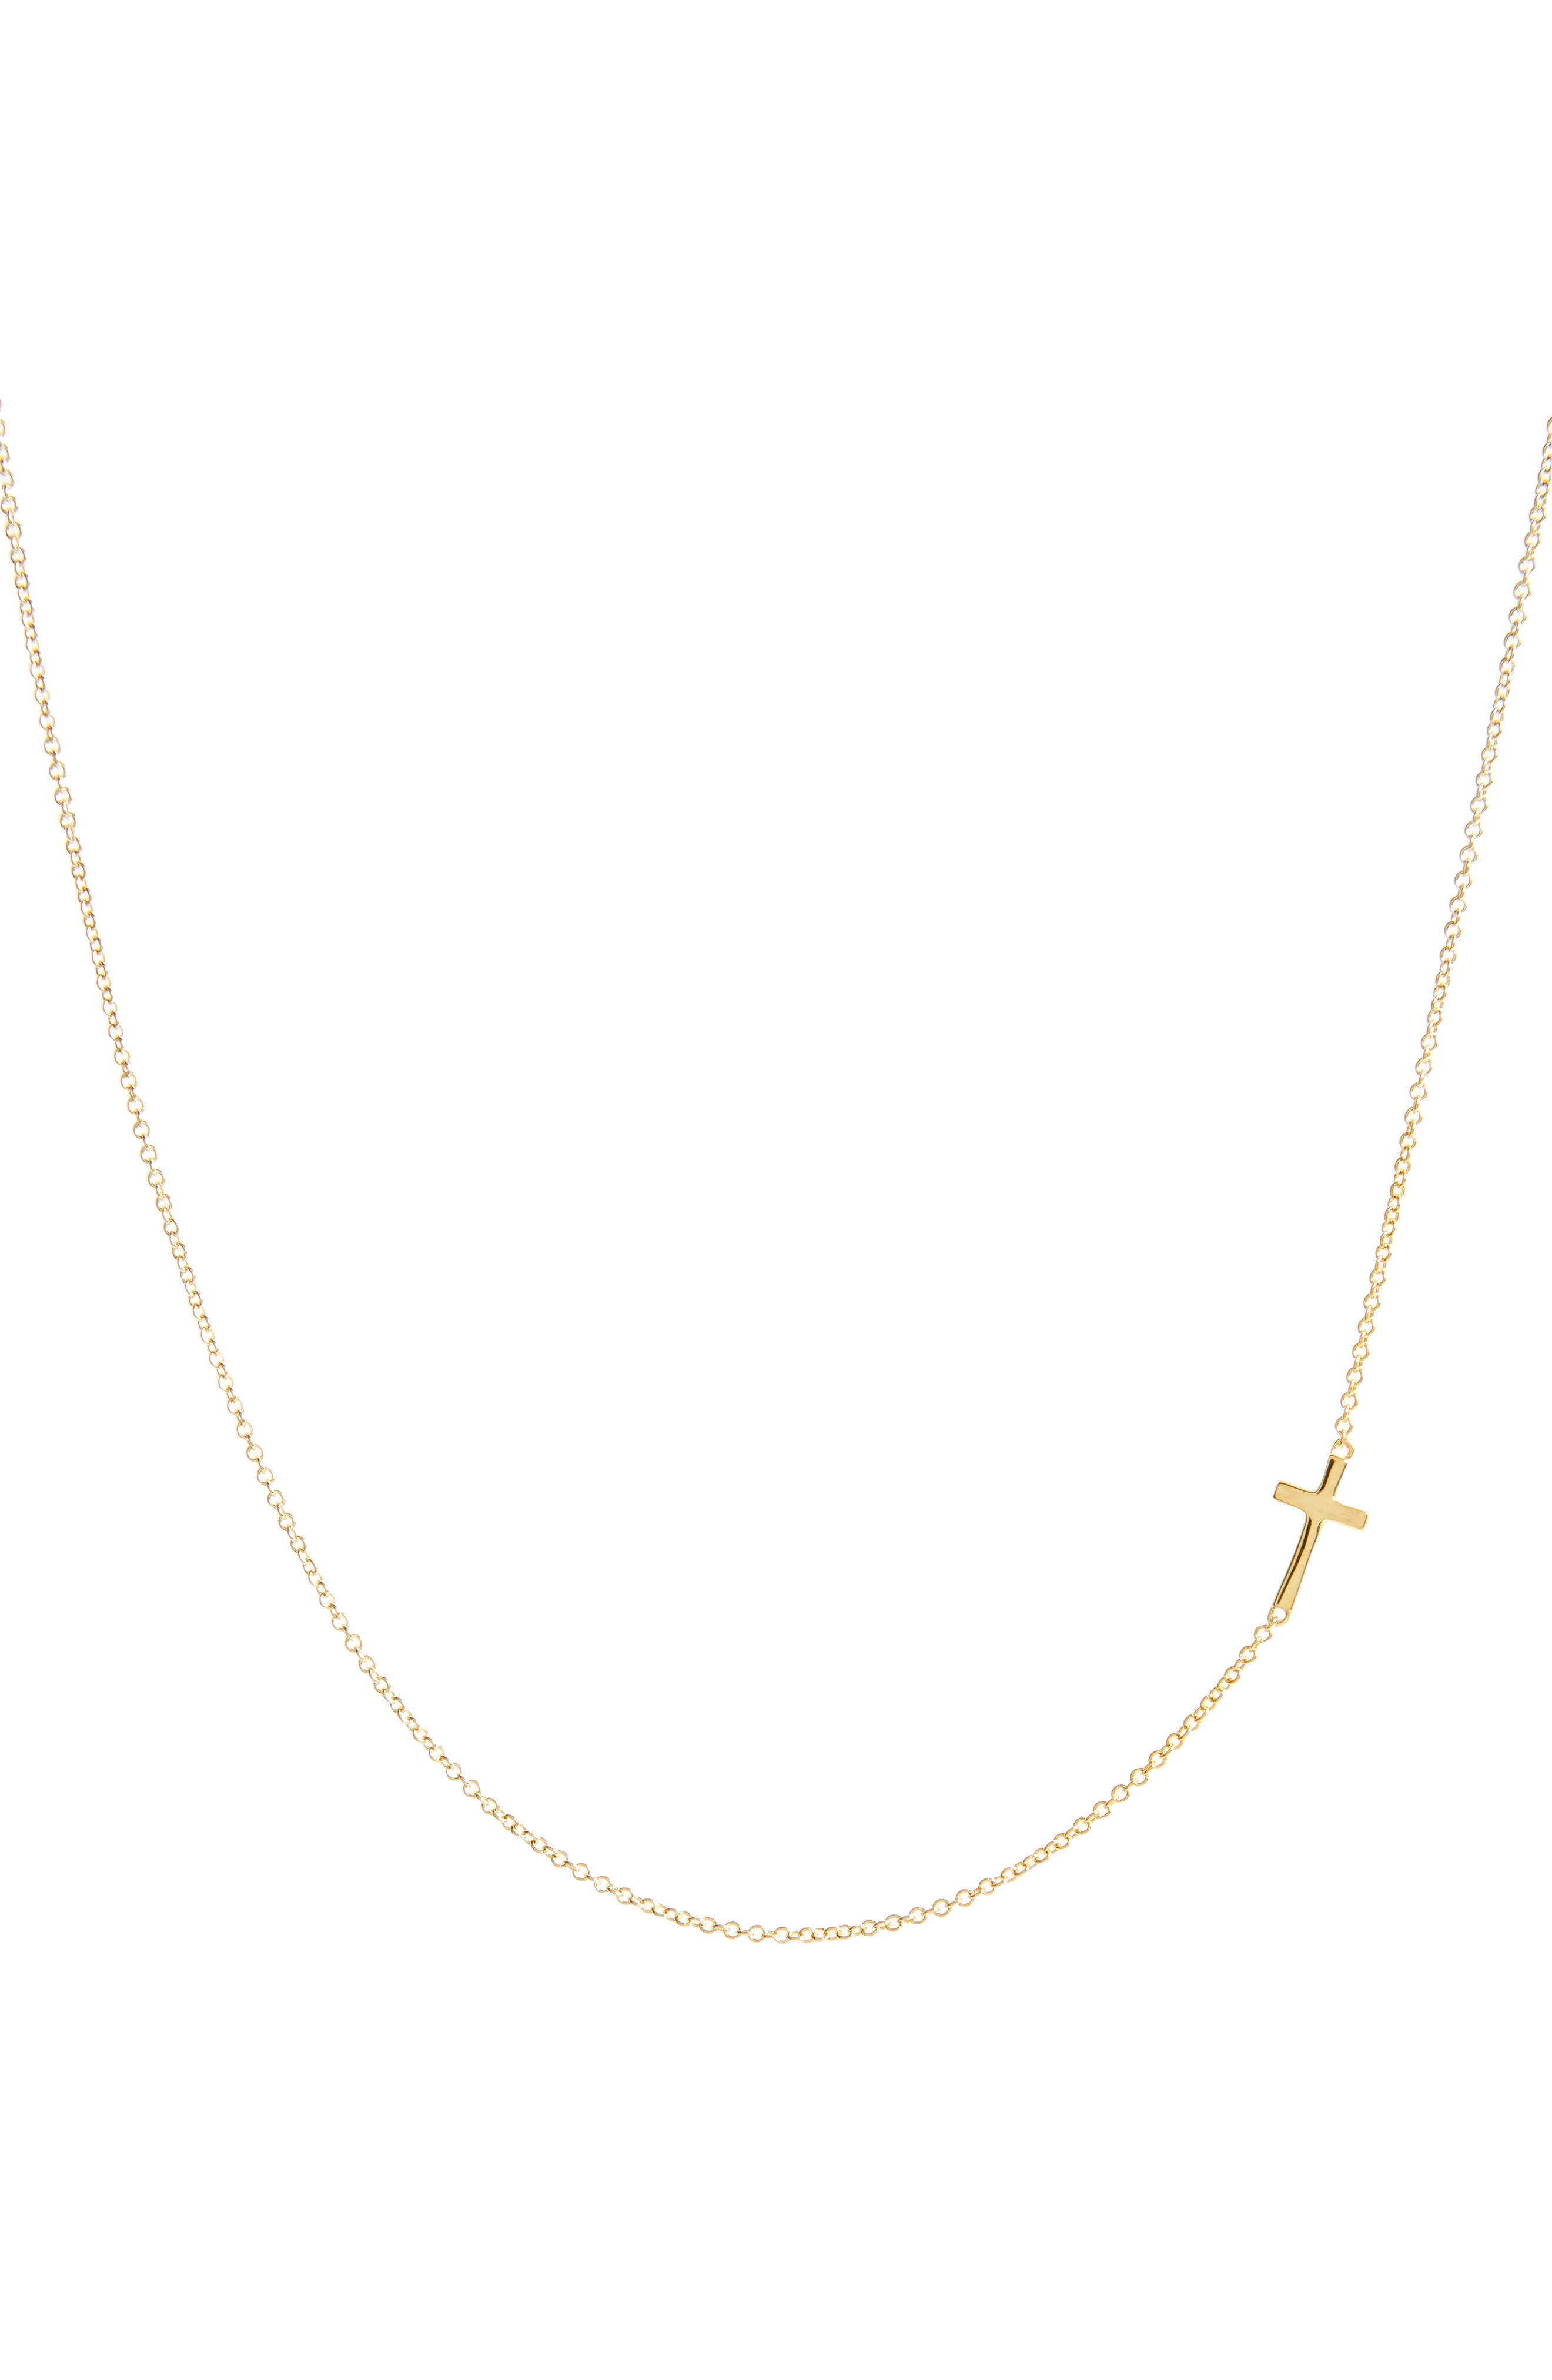 Cross Station Necklace,                             Main thumbnail 1, color,                             YELLOW GOLD